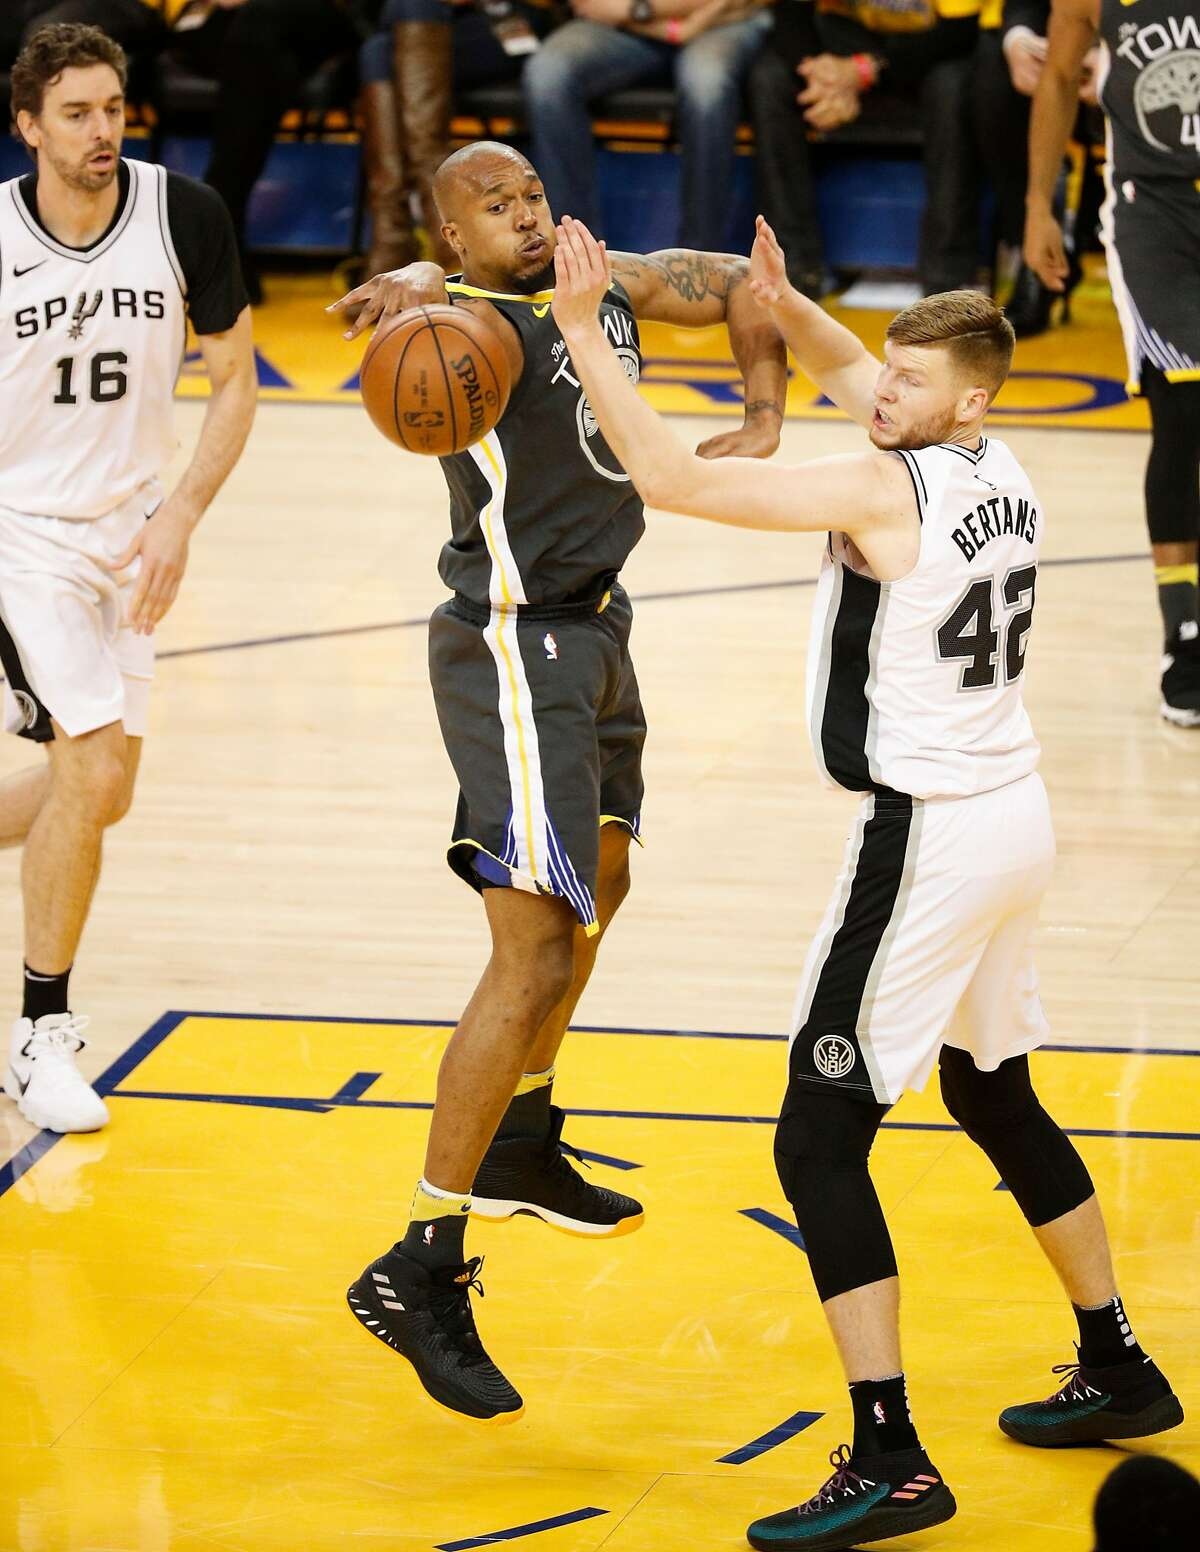 Golden State Warriors' David West passes off against San Antonio Spurs' Davis Bertans in the second quarter during game 2 of round 1 of the Western Conference Finals at Oracle Arena on Monday, April 16, 2018 in Oakland, Calif.